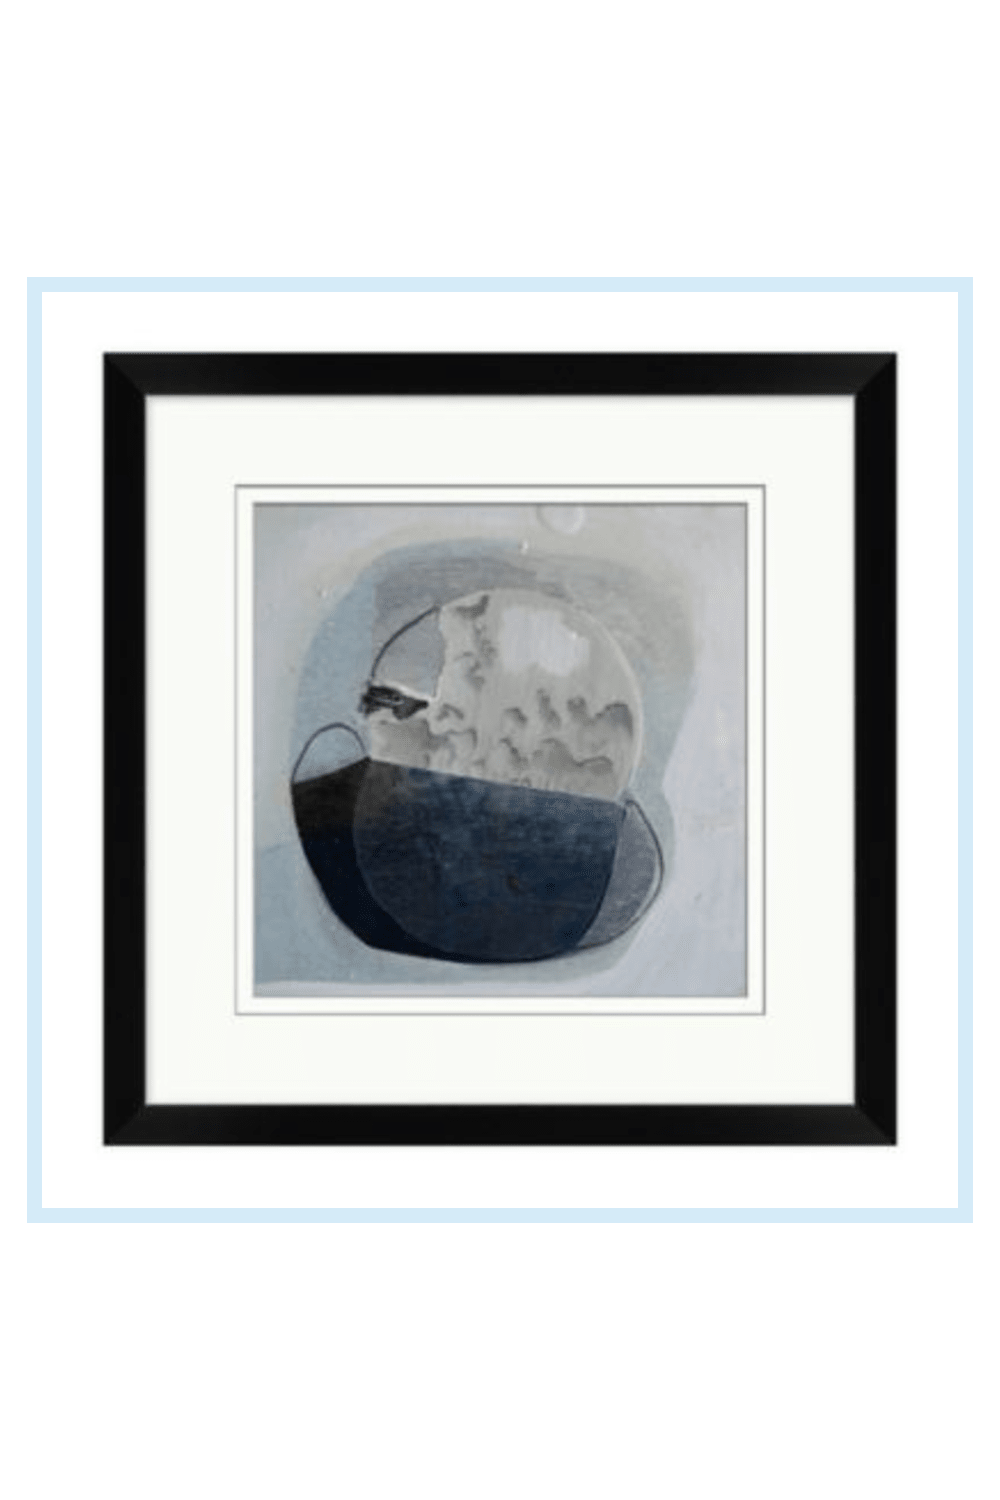 Moonlit Night 18-Inch X 22-Inch Framed Wall Art - The abstract collage design of the Moonlit Night Framed Wall Art will add texture to your home decor. This eye-catching piece features a variety of shapes and colors outlined by a sleek black frame. Comes ready to hang. - living room decor